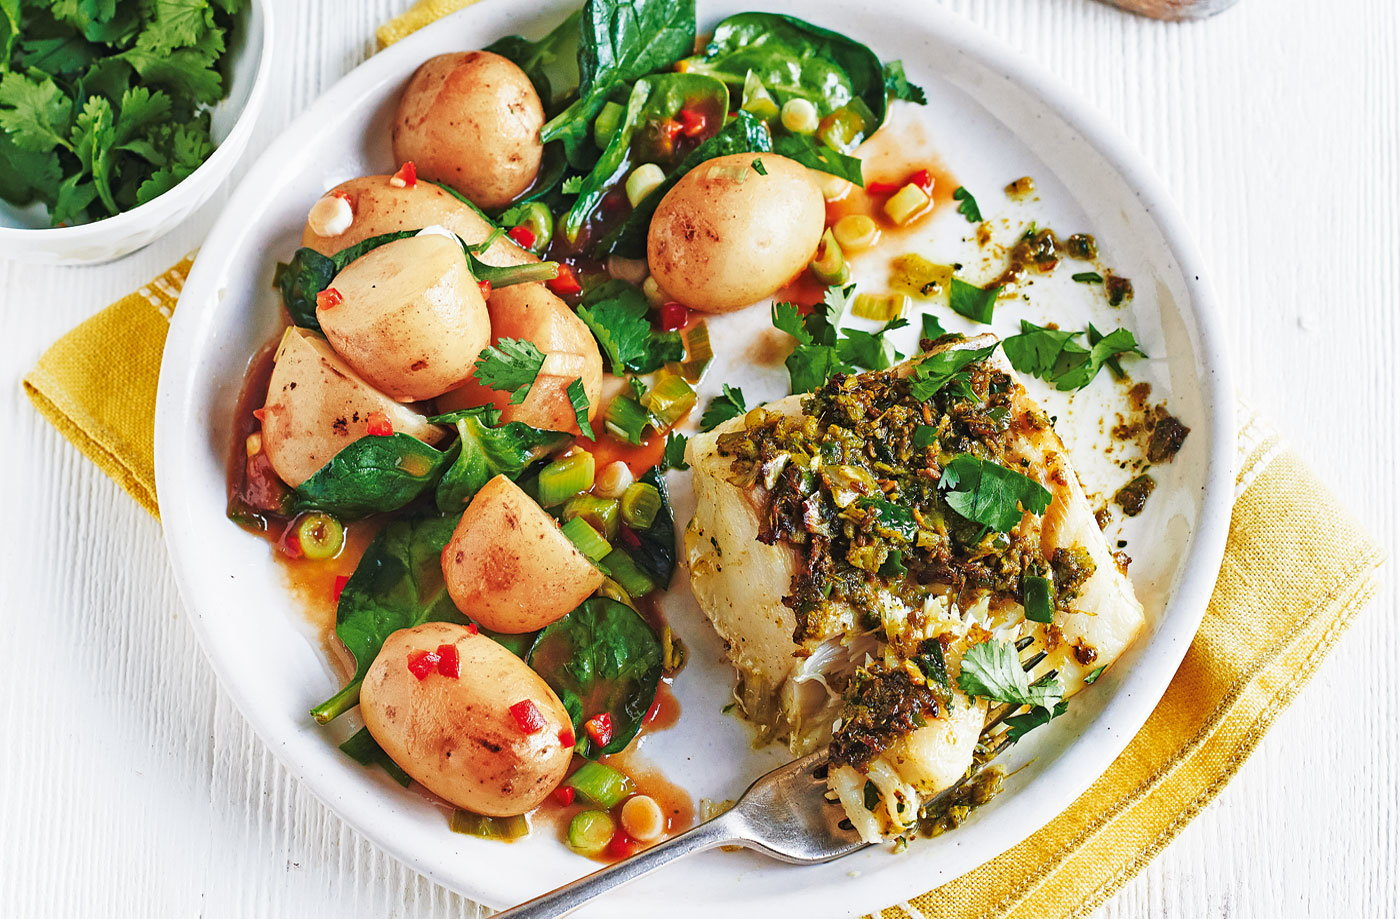 Spiced fish with tamarind potatoes